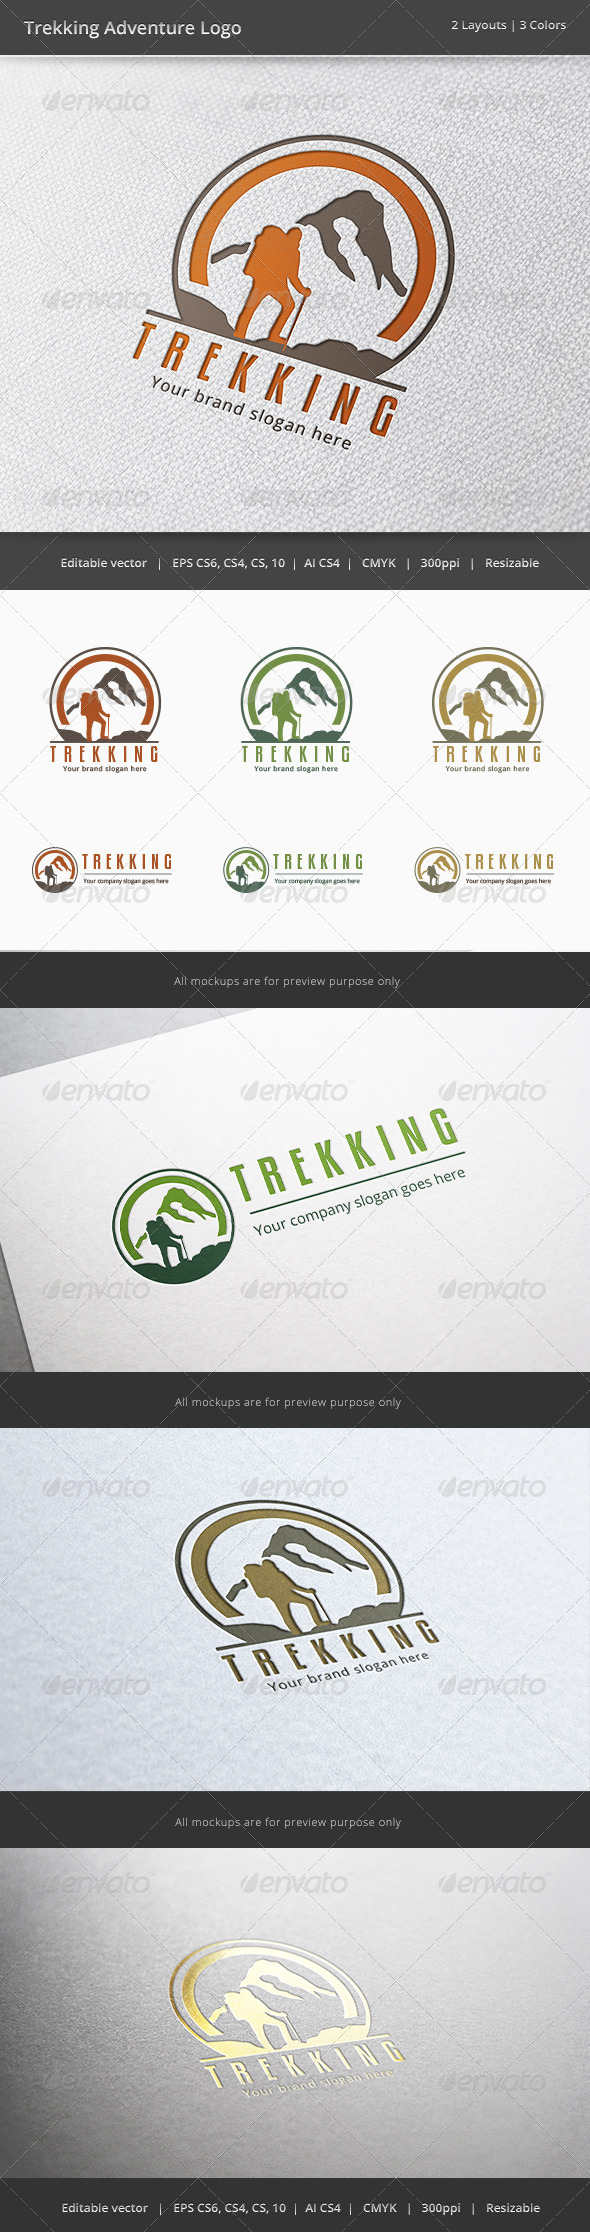 GraphicRiver Trekking Adventure Logo 6315567